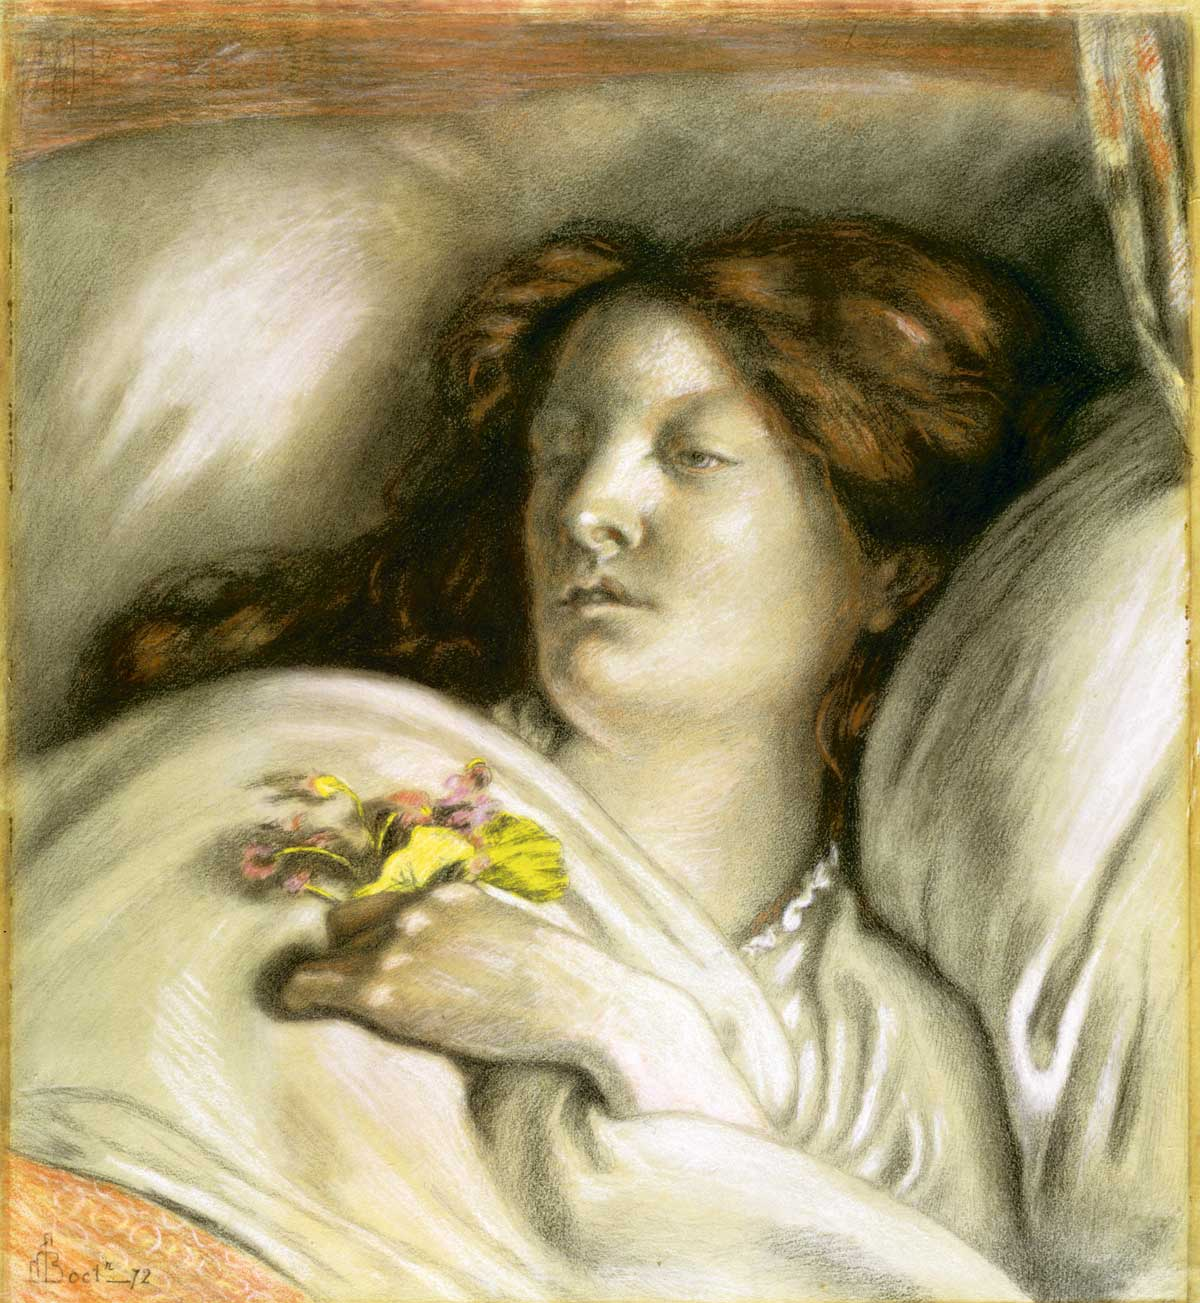 Convalescent (Emma), by Ford Madox Brown, 1872 © Bridgeman Images.